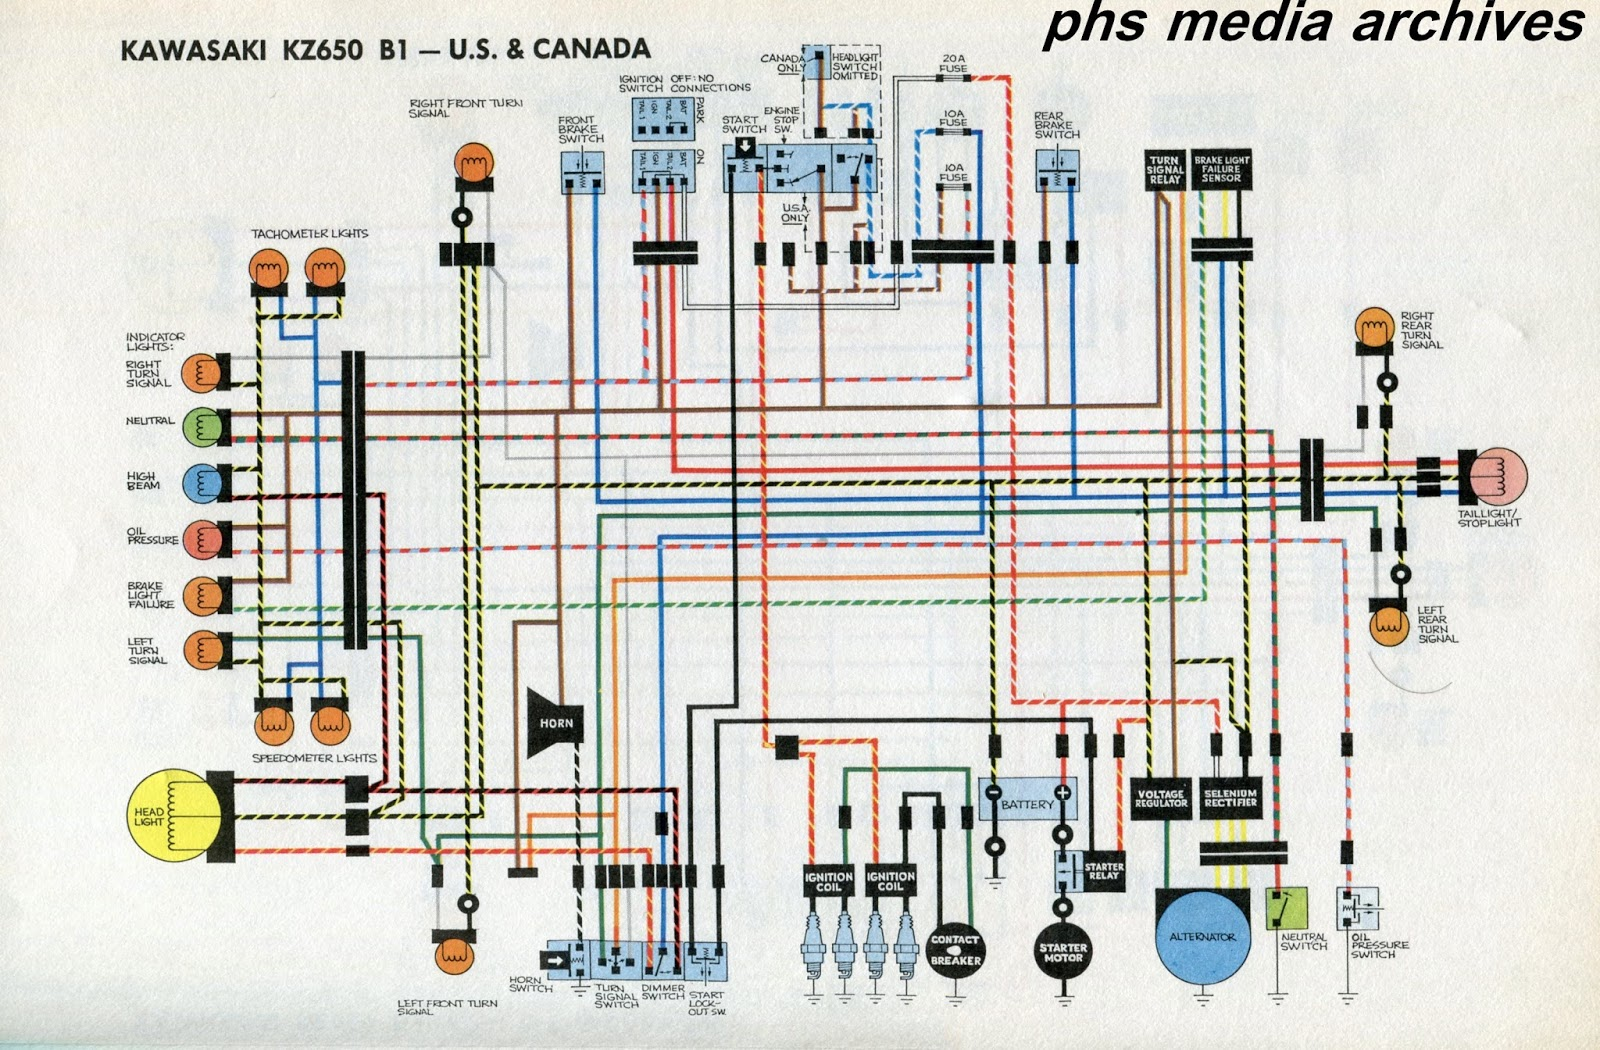 K Z 650 H1 Wiring Diagram - Wiring Diagram Name K Z Wiring Diagram on honda motorcycle repair diagrams, electrical diagrams, pinout diagrams, engine diagrams, troubleshooting diagrams, lighting diagrams, motor diagrams, switch diagrams, smart car diagrams, gmc fuse box diagrams, internet of things diagrams, hvac diagrams, sincgars radio configurations diagrams, series and parallel circuits diagrams, electronic circuit diagrams, friendship bracelet diagrams, led circuit diagrams, battery diagrams, transformer diagrams,